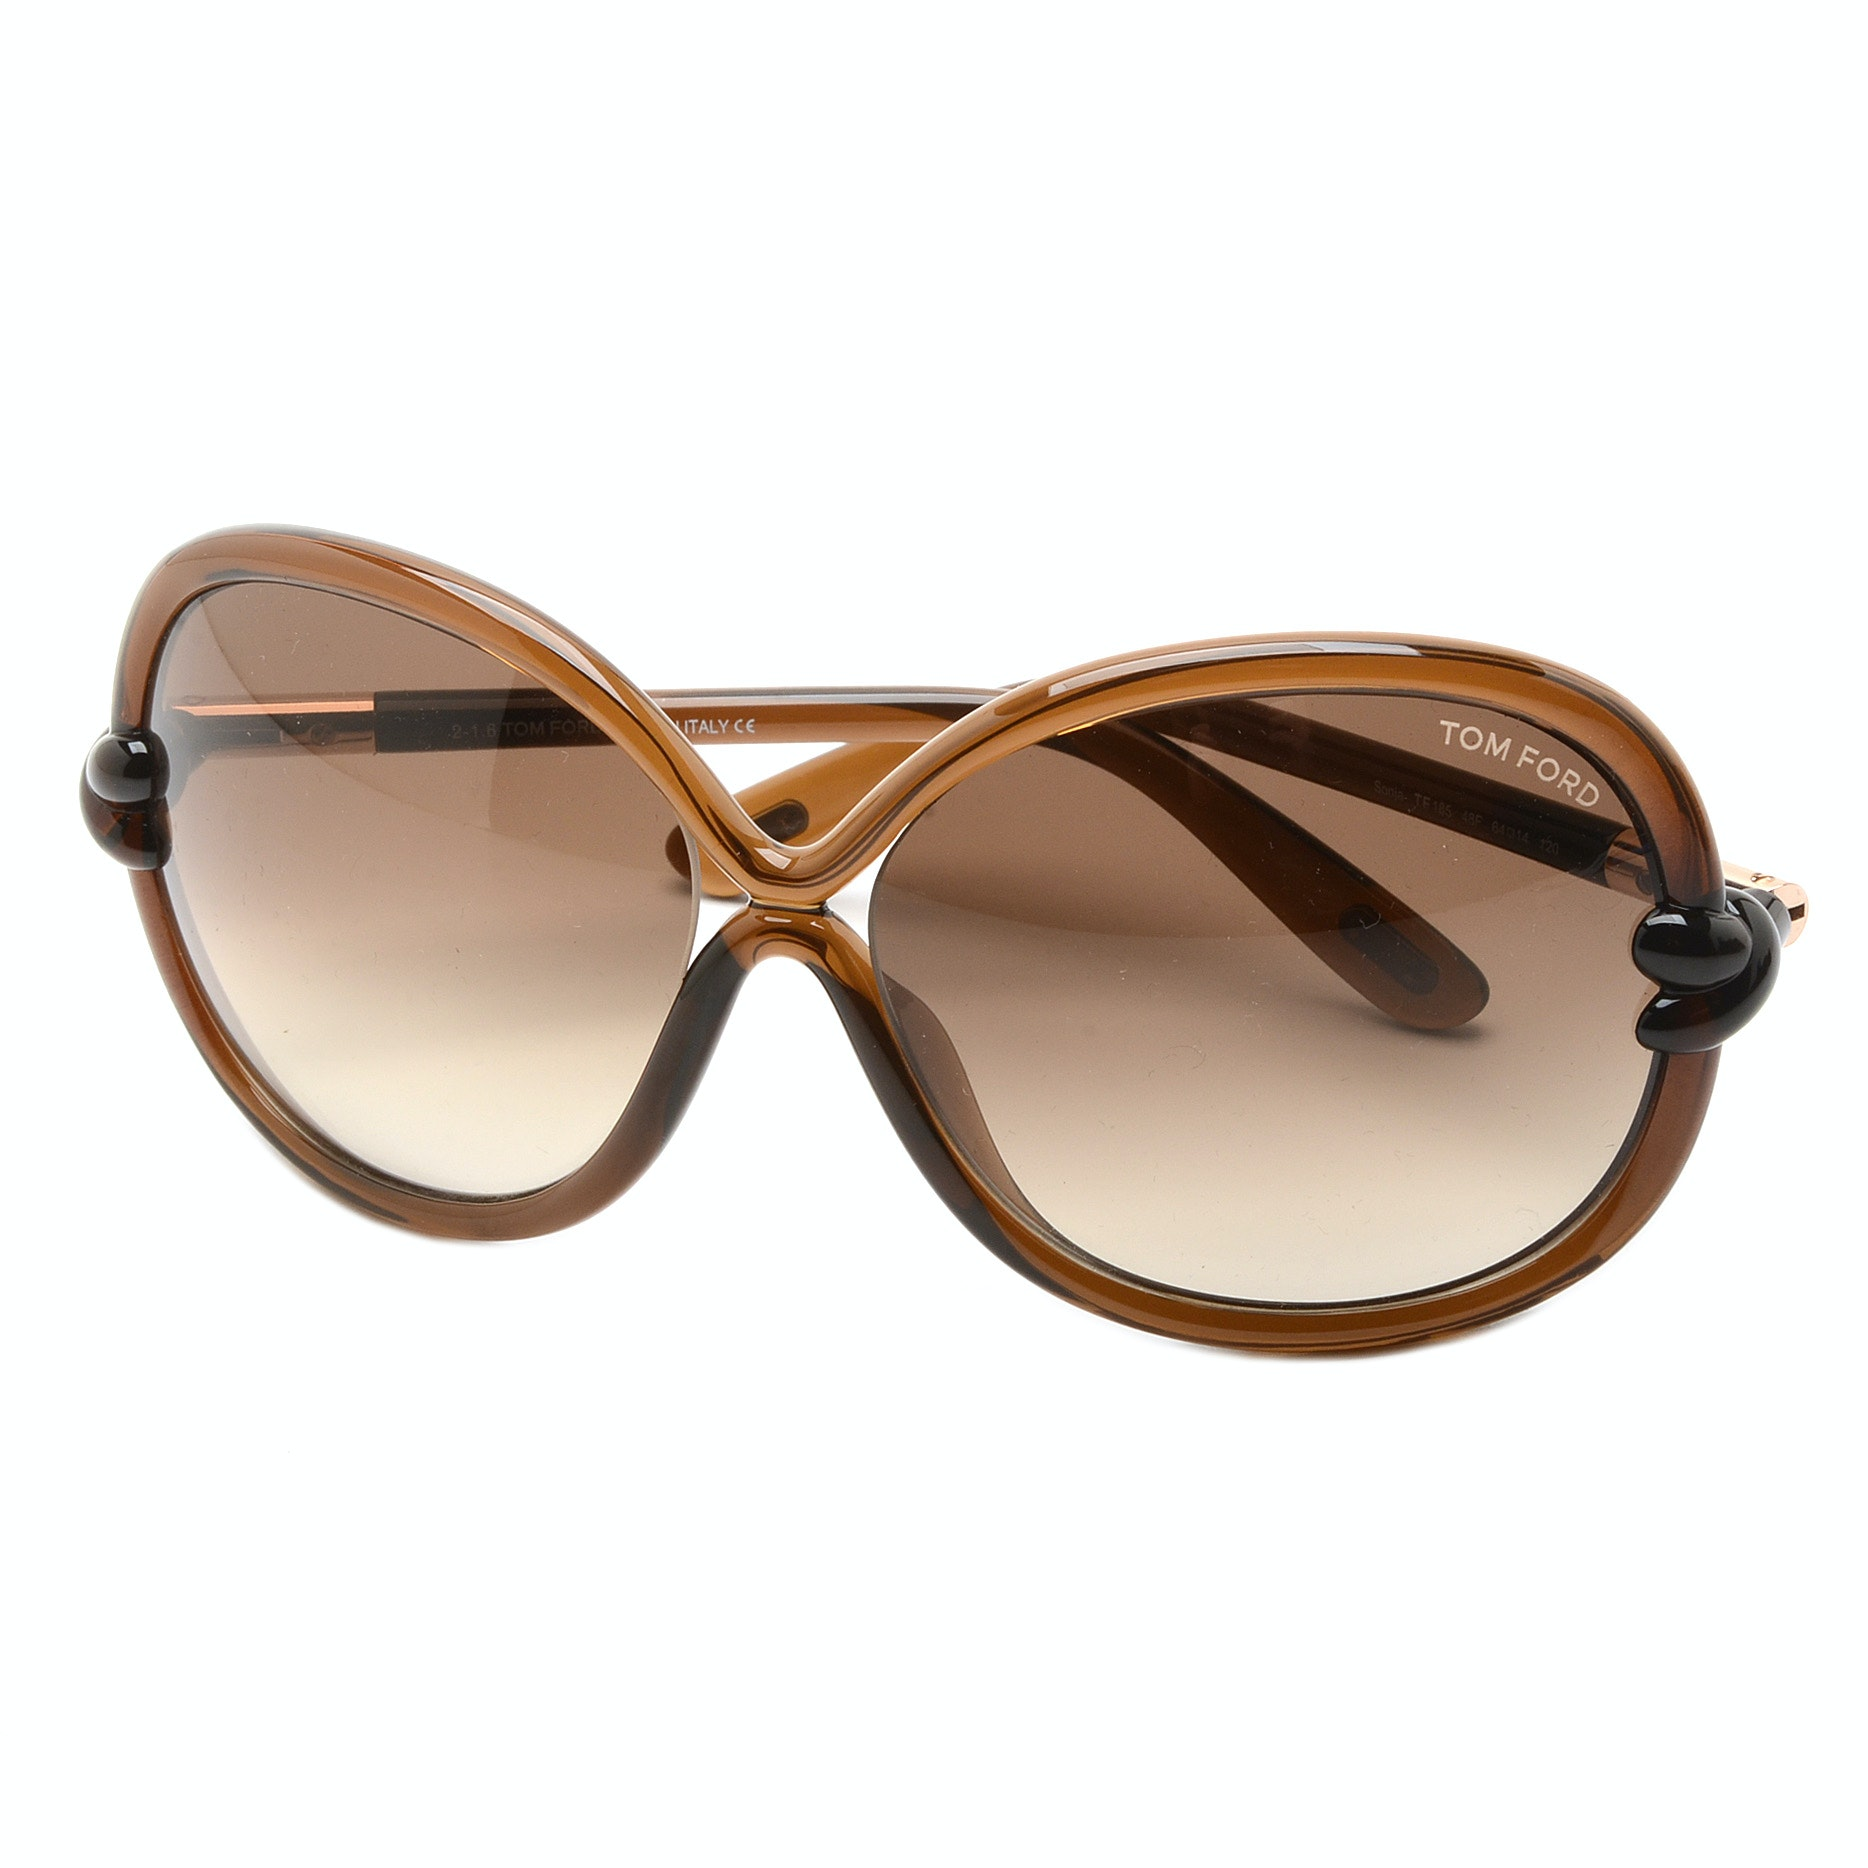 Tom Ford Sonja Sunglasses